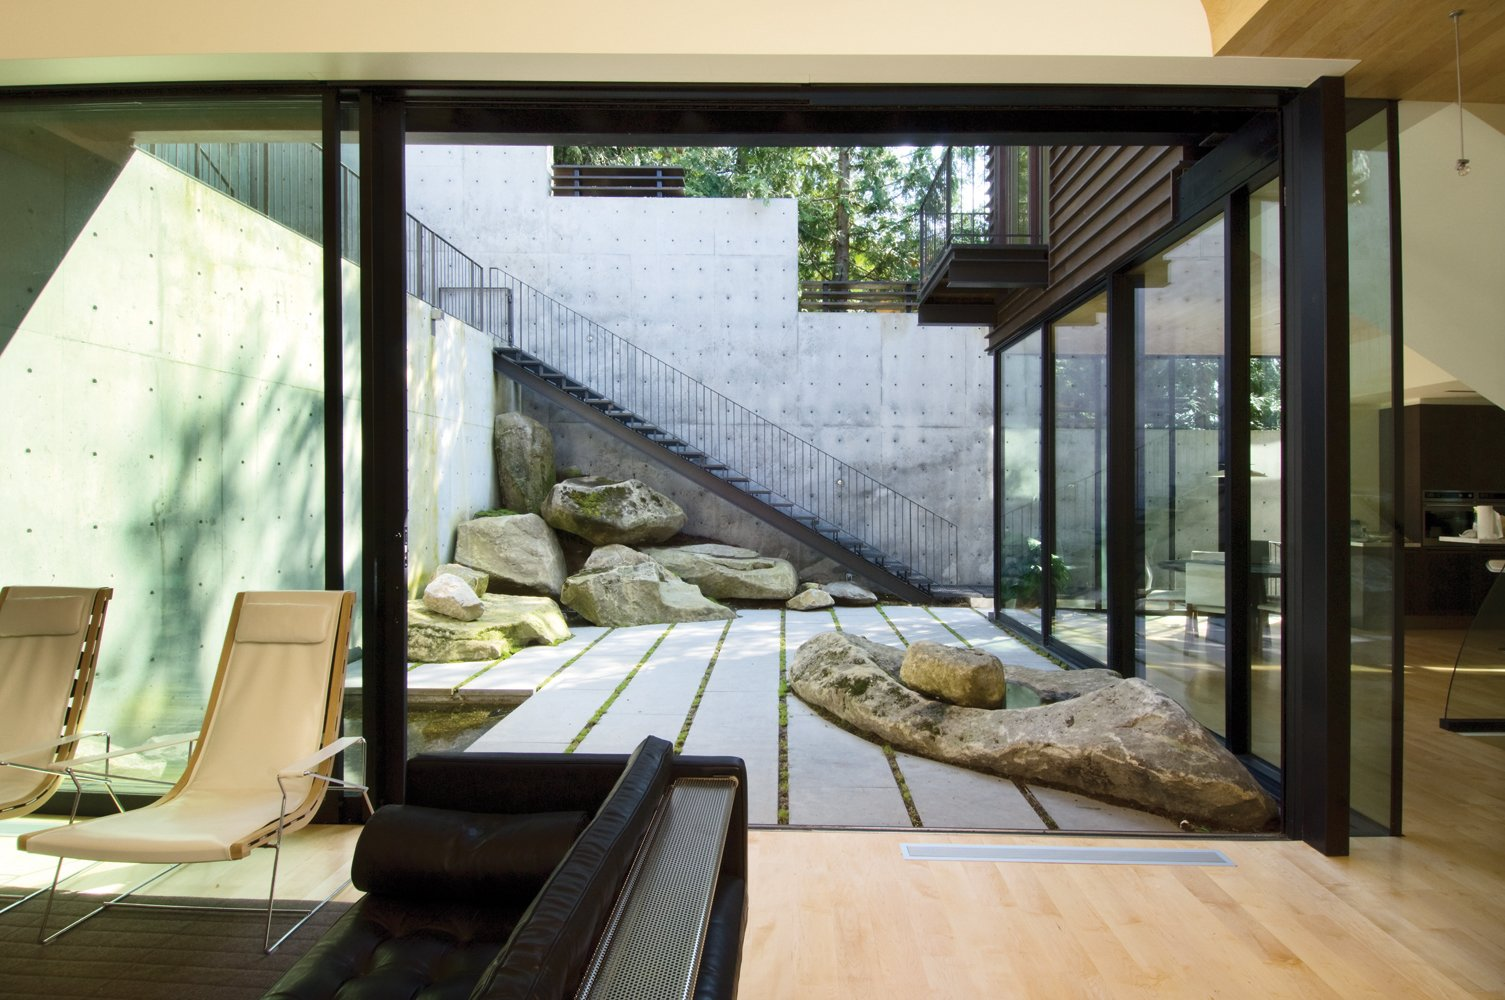 Outdoor, Small Pools, Tubs, Shower, and Boulders  Courtyard House on a Steep Site by Robert Hutchison Architecture